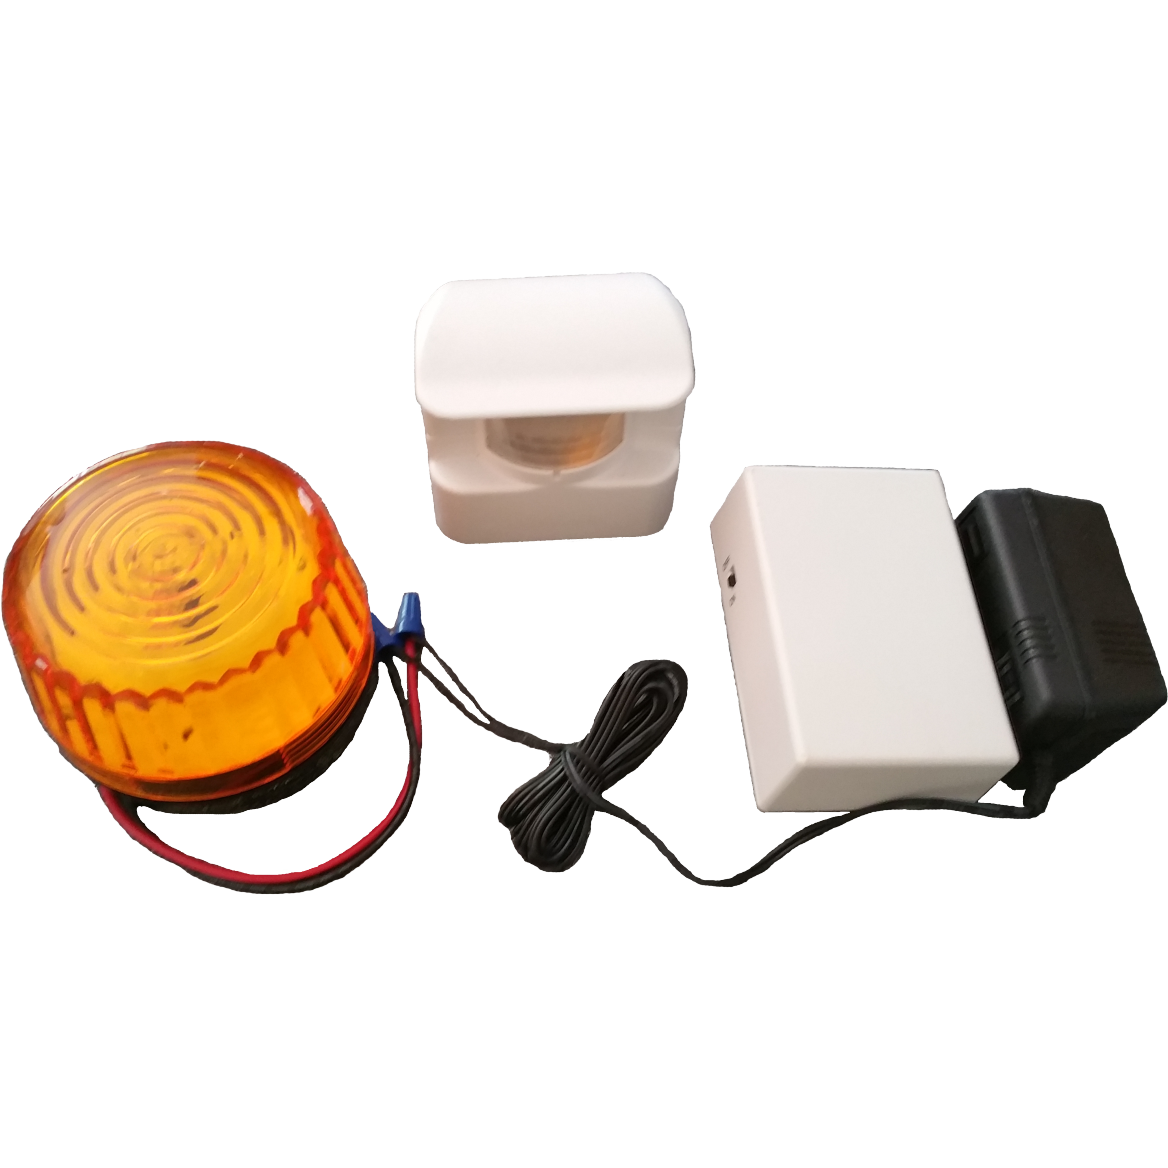 Motion activated sensor with remote strobe ( HS3605) RC 24